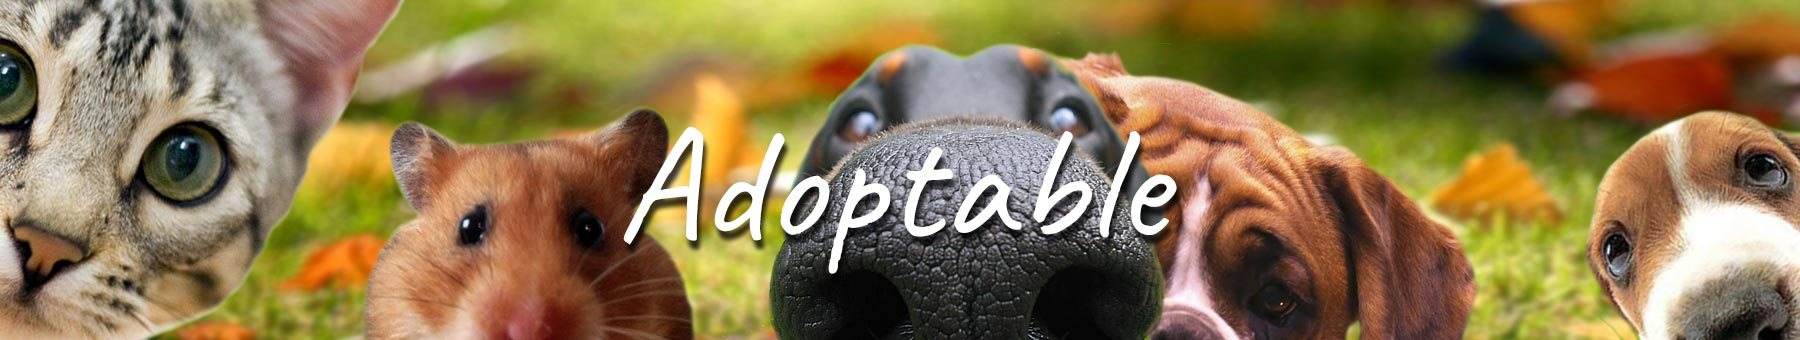 Adoptable - Cats and dogs in need of rehoming